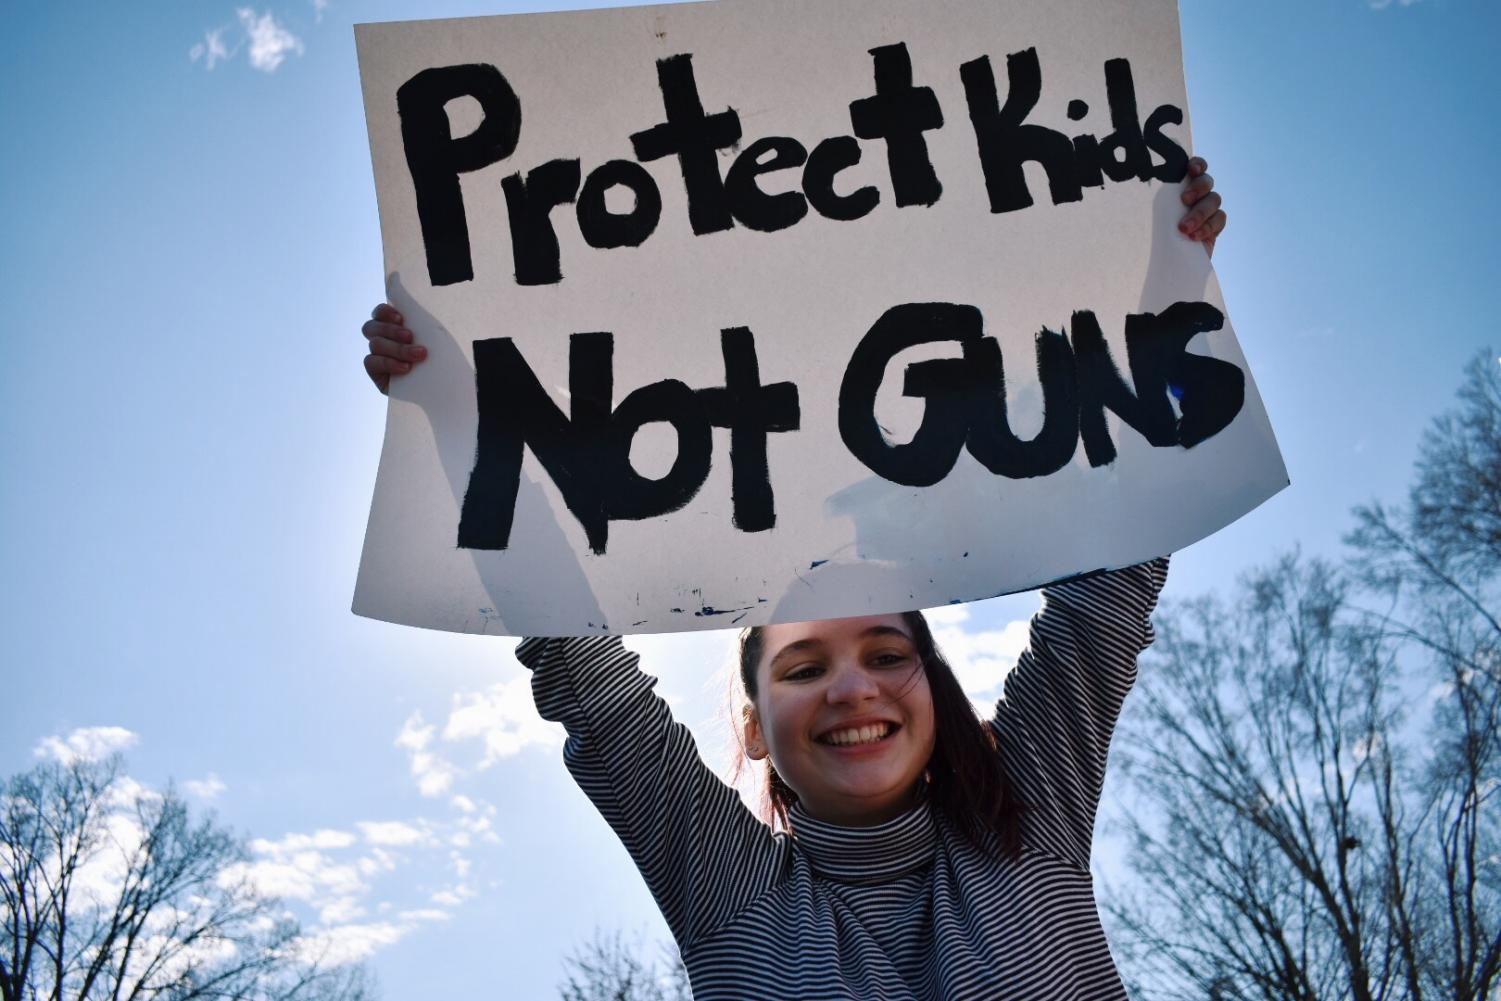 Senior Eleanor Wright at one of the school walkouts advocating for gun reform last year, she and other students received and excused absence for classes during the protest.